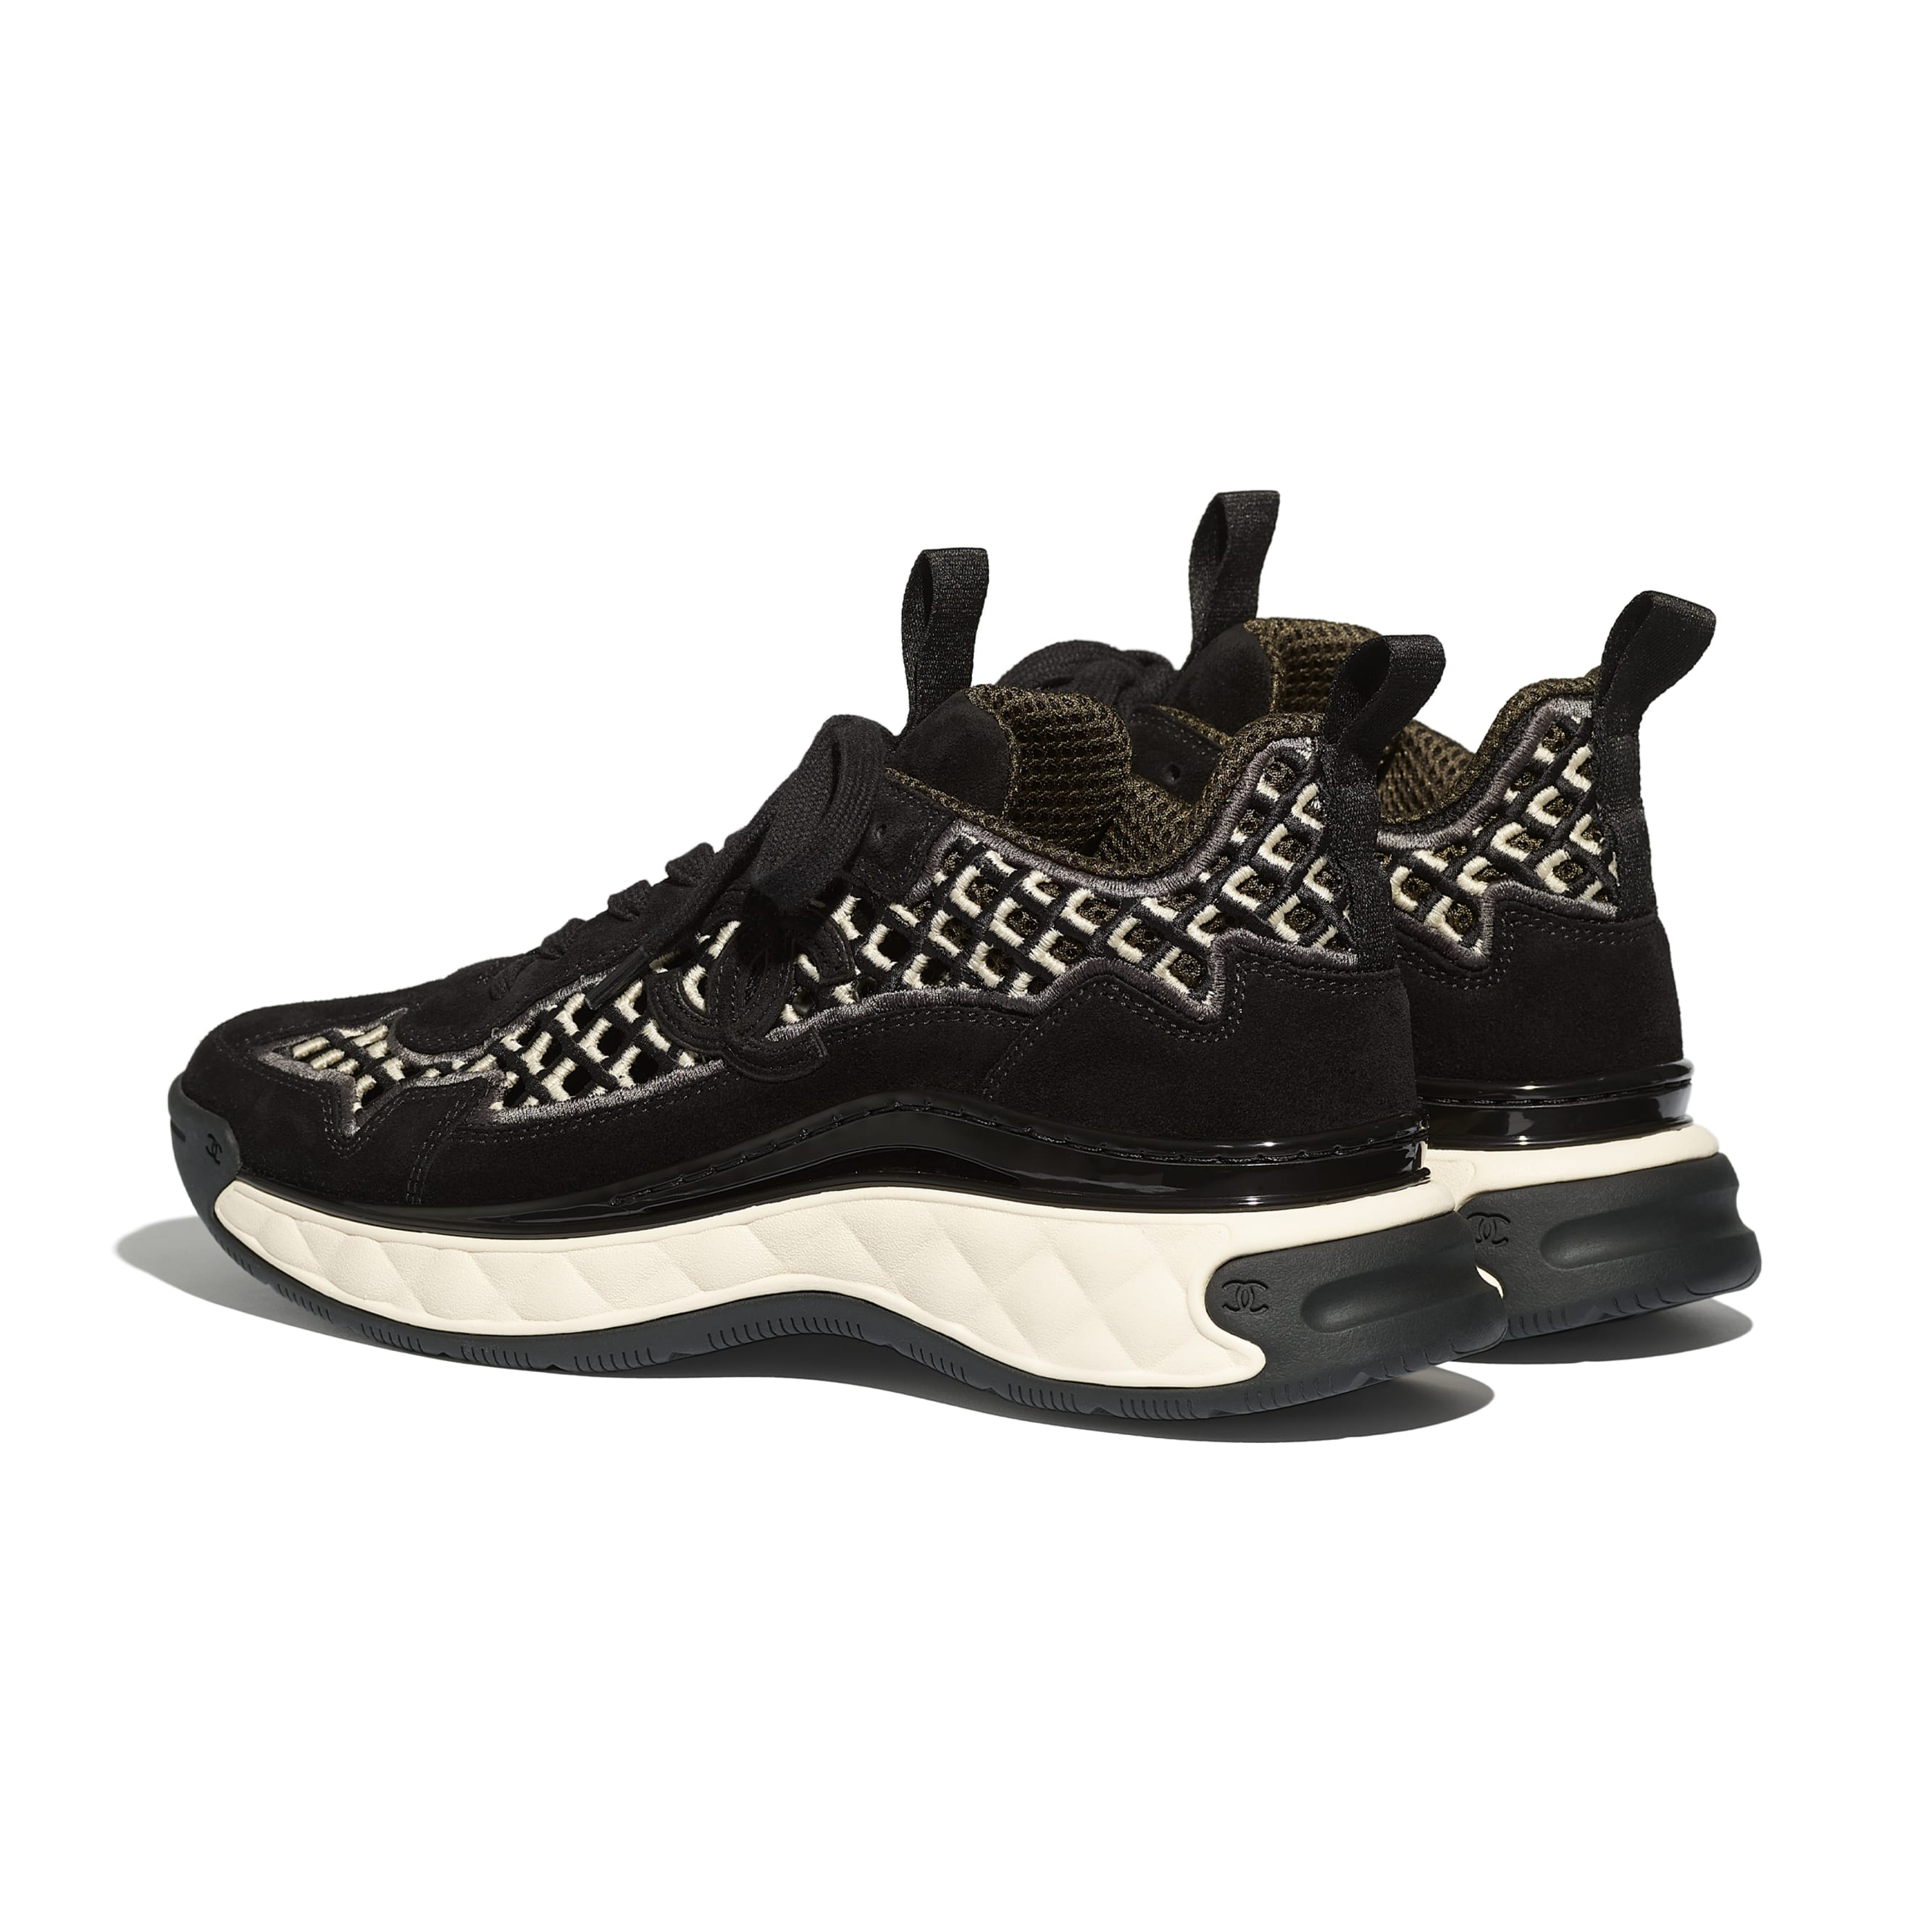 Sneakers - Black - Suede Calfskin & Embroidery - CHANEL - Other view - see standard sized version